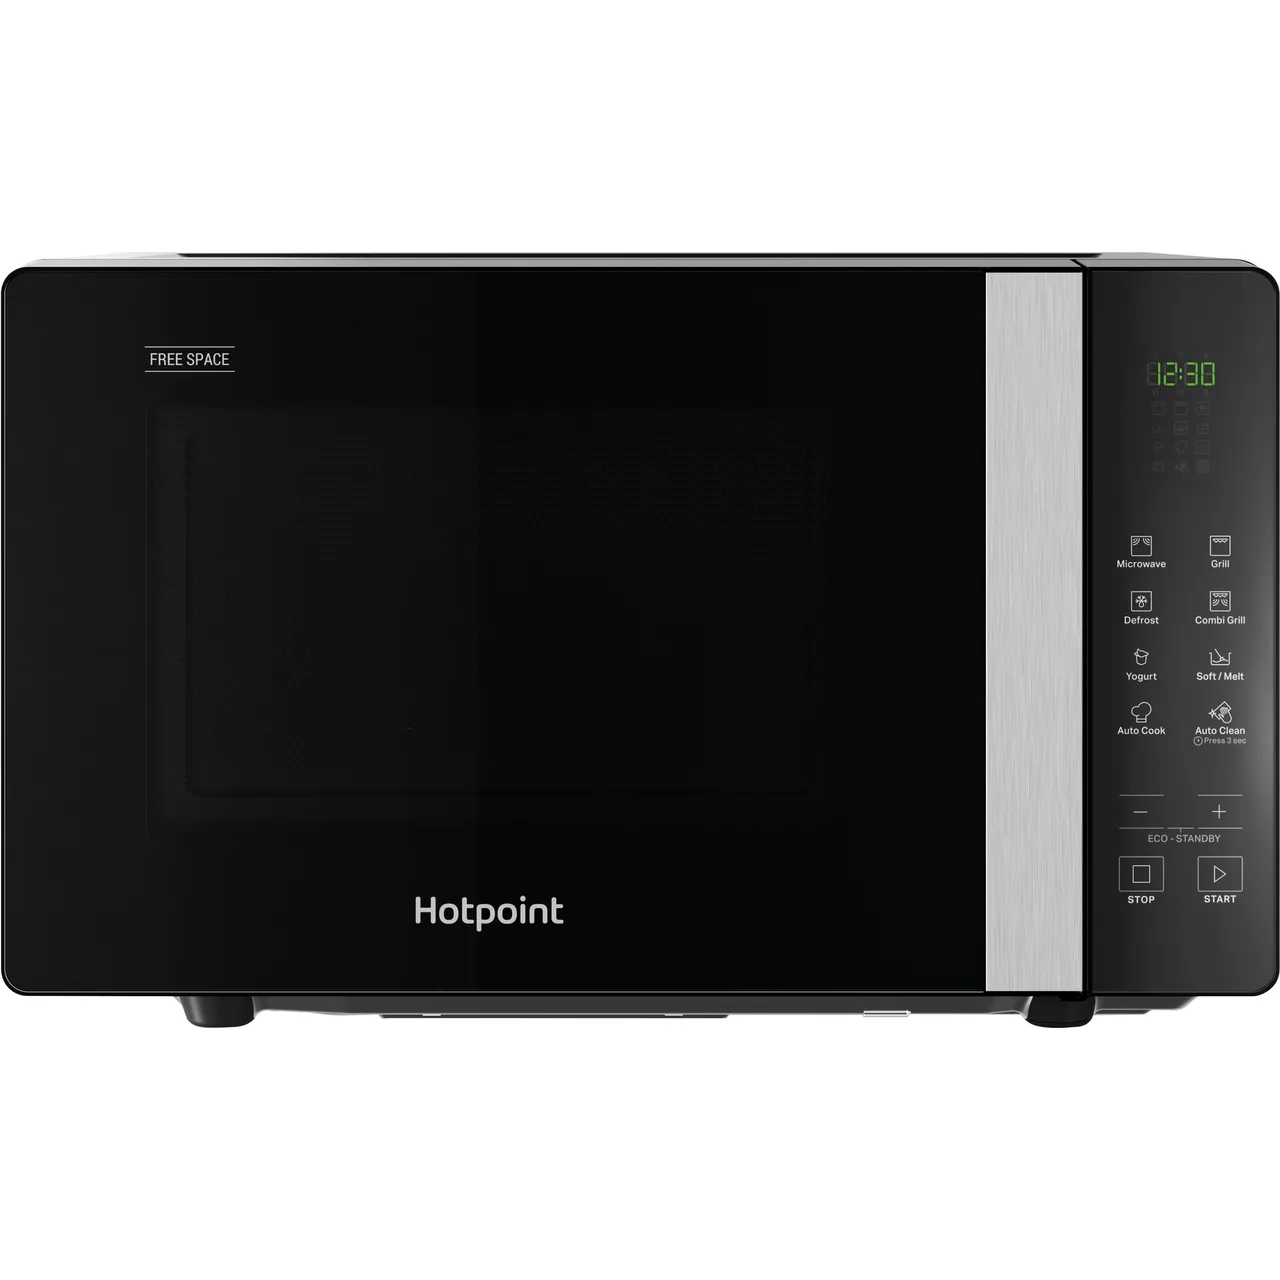 hotpoint free space mwhf203b 20 litre microwave with grill black